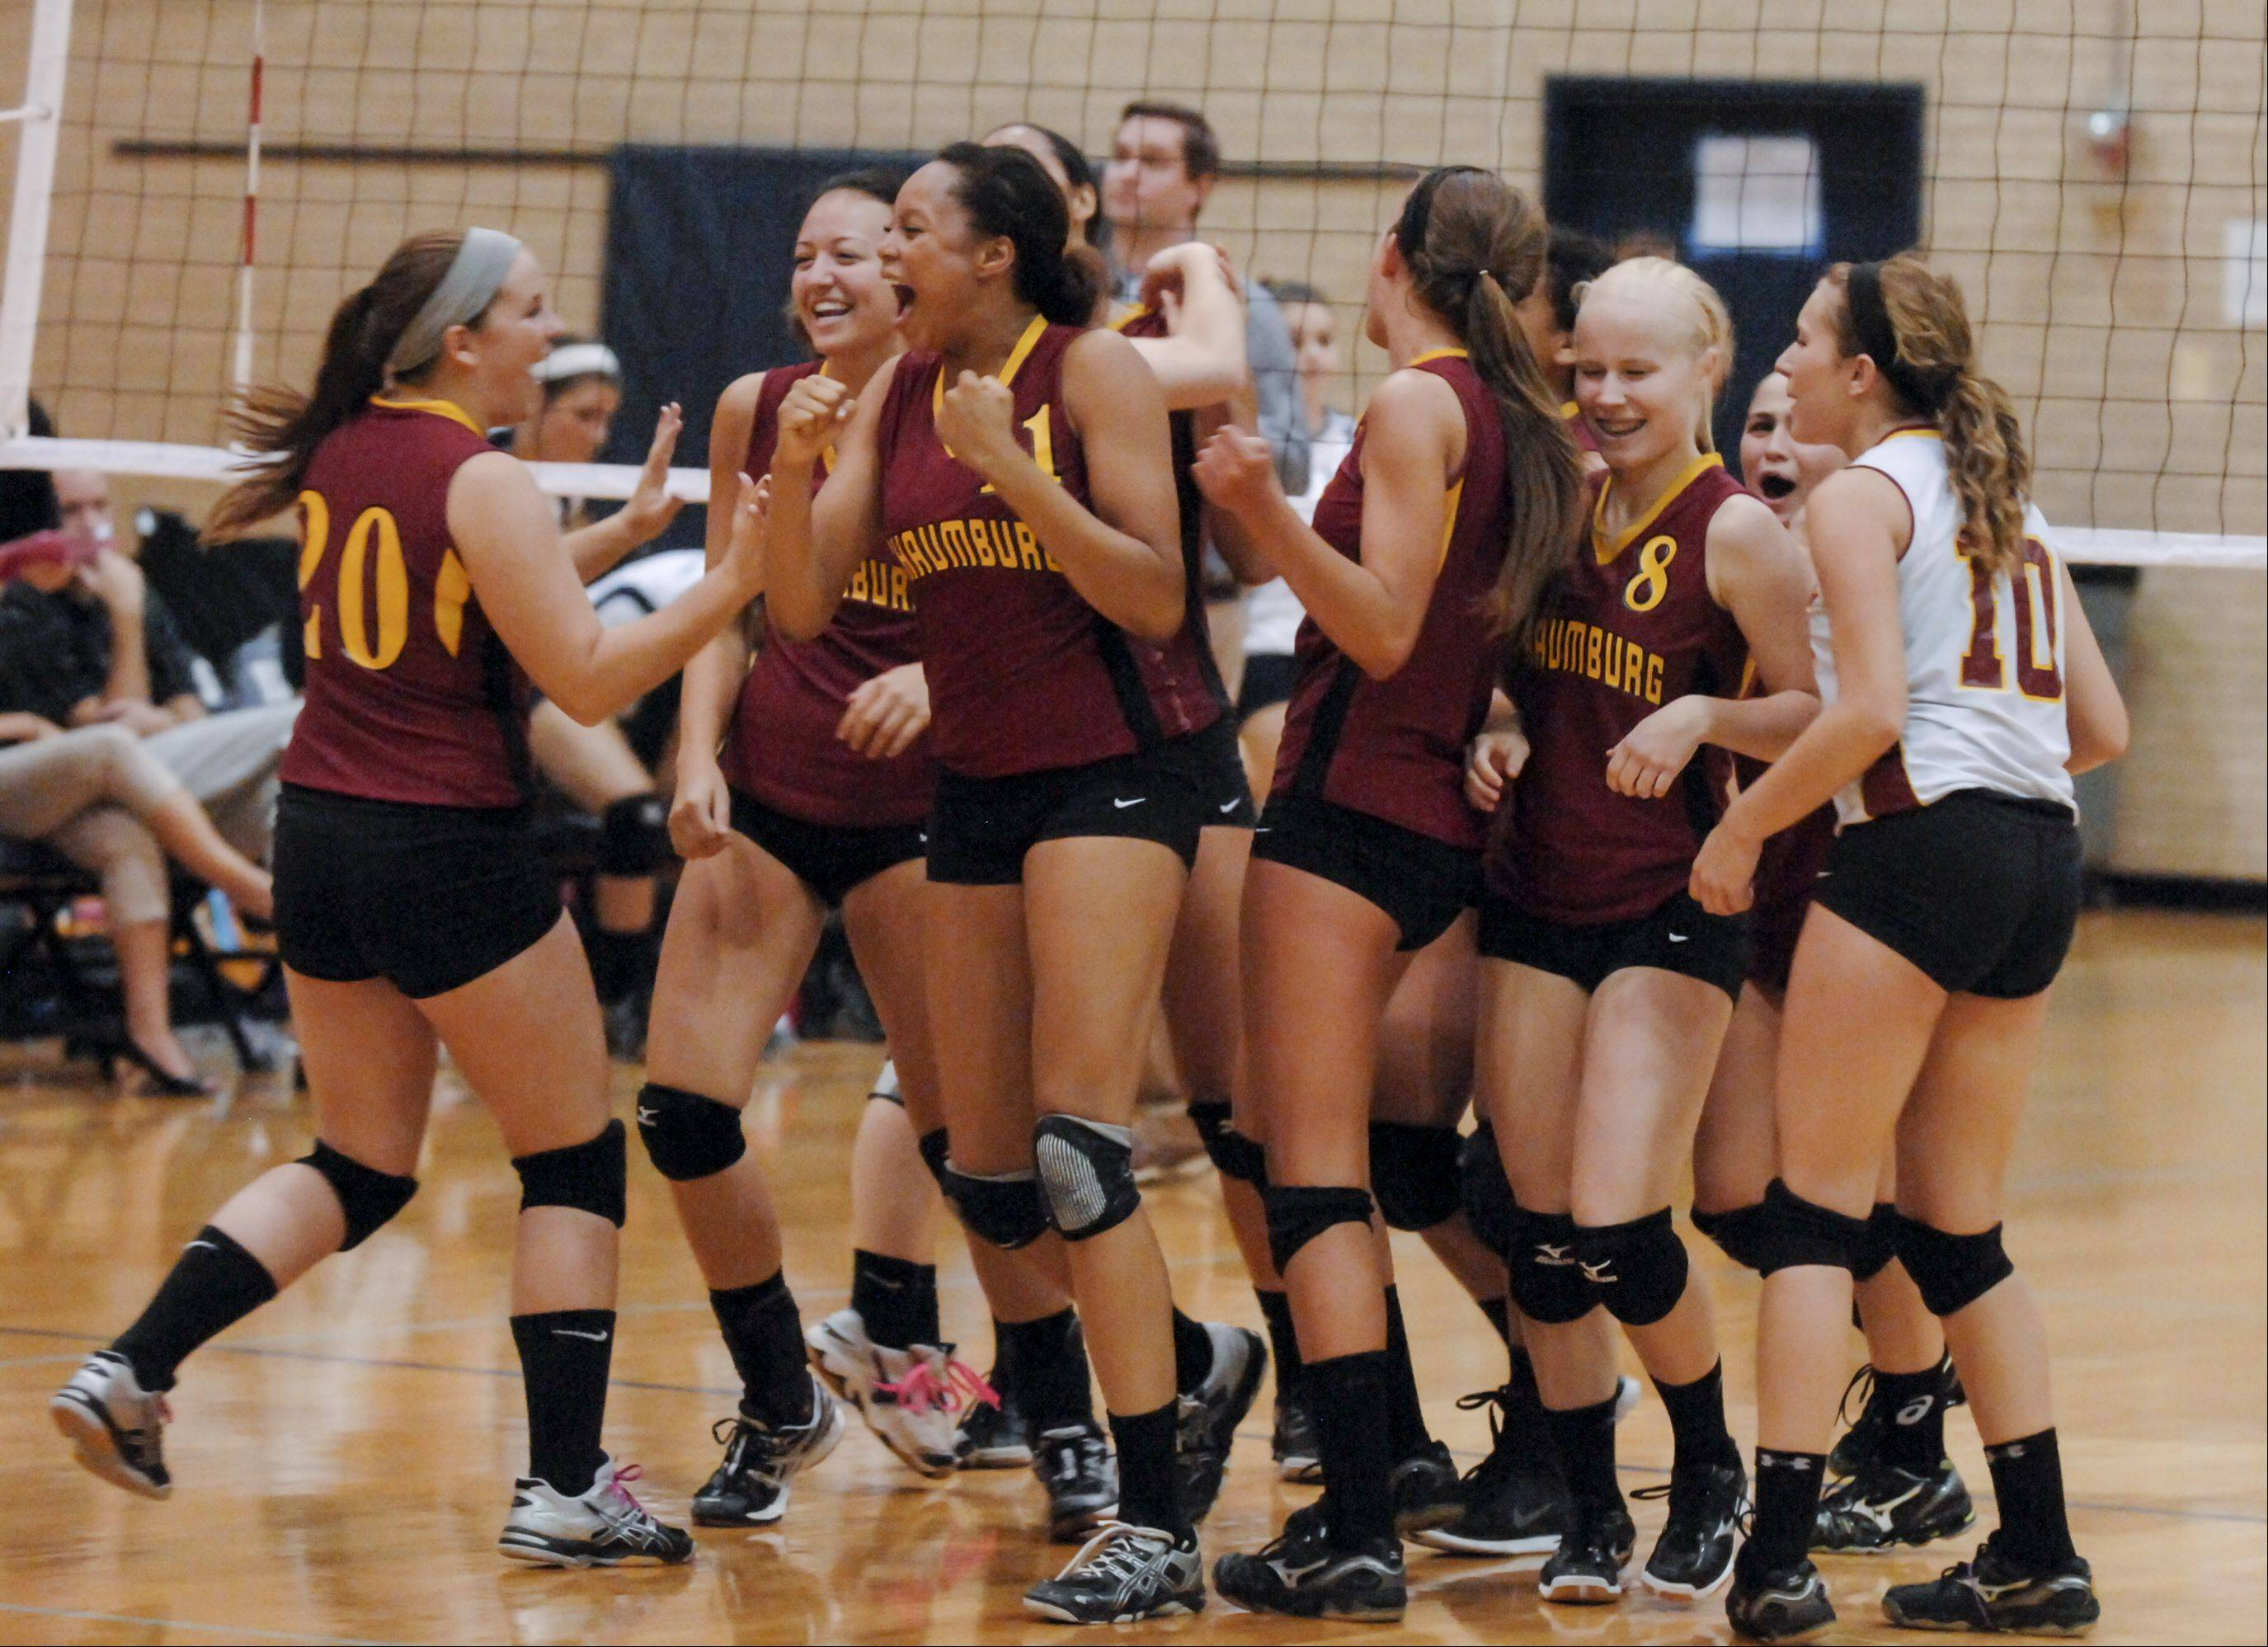 Schaumburg celebrates their 2-0 win over Addison Trail Wednesday in Addison.